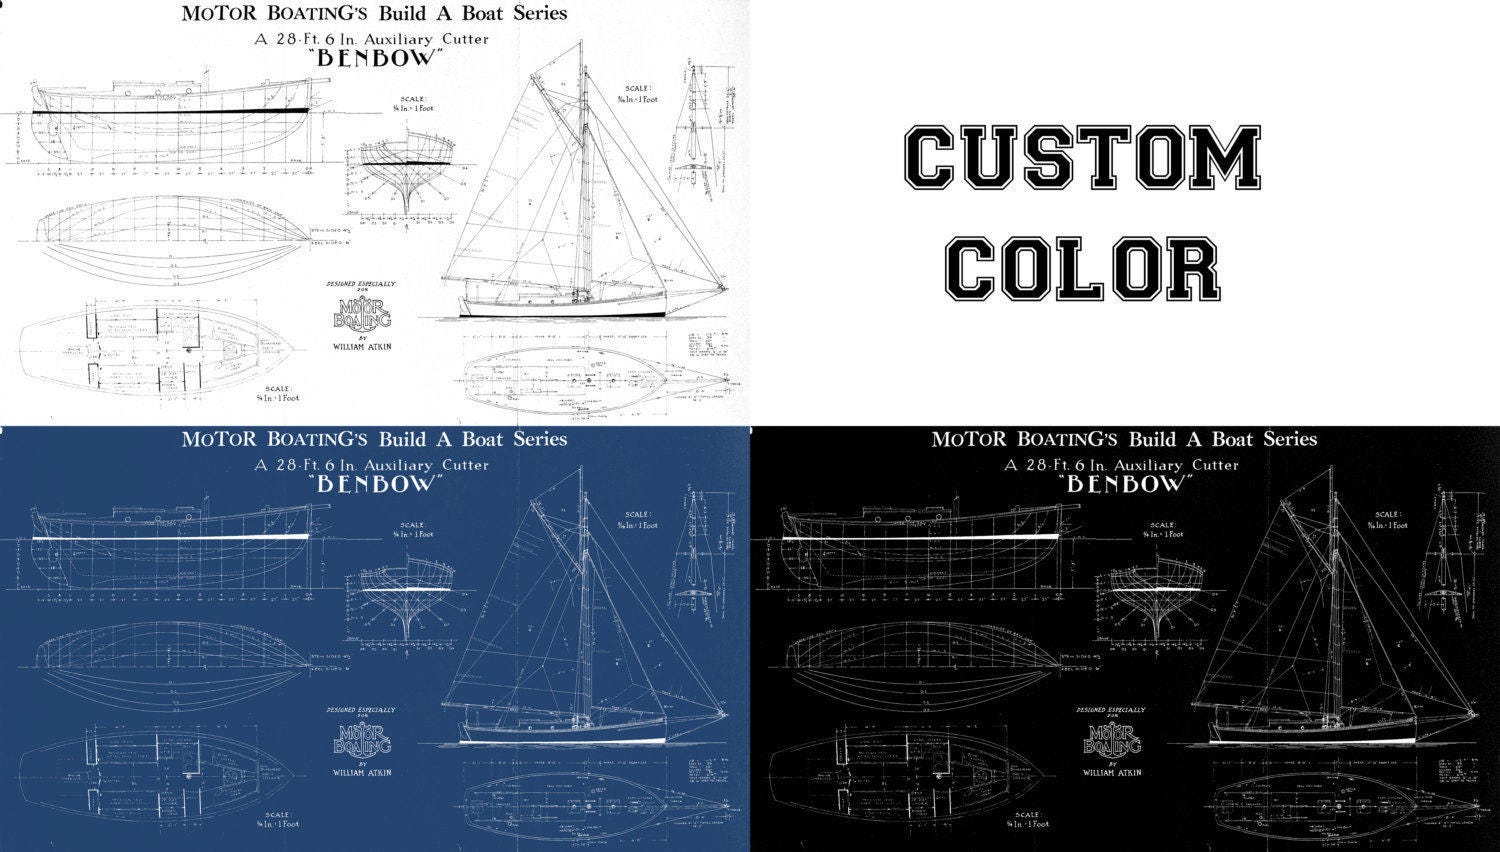 Print of vintage benbow boat blueprint from motor boatings build a print of vintage benbow boat blueprint from motor boatings build a boat series on your choice of matte paper photo paper or canvas malvernweather Image collections